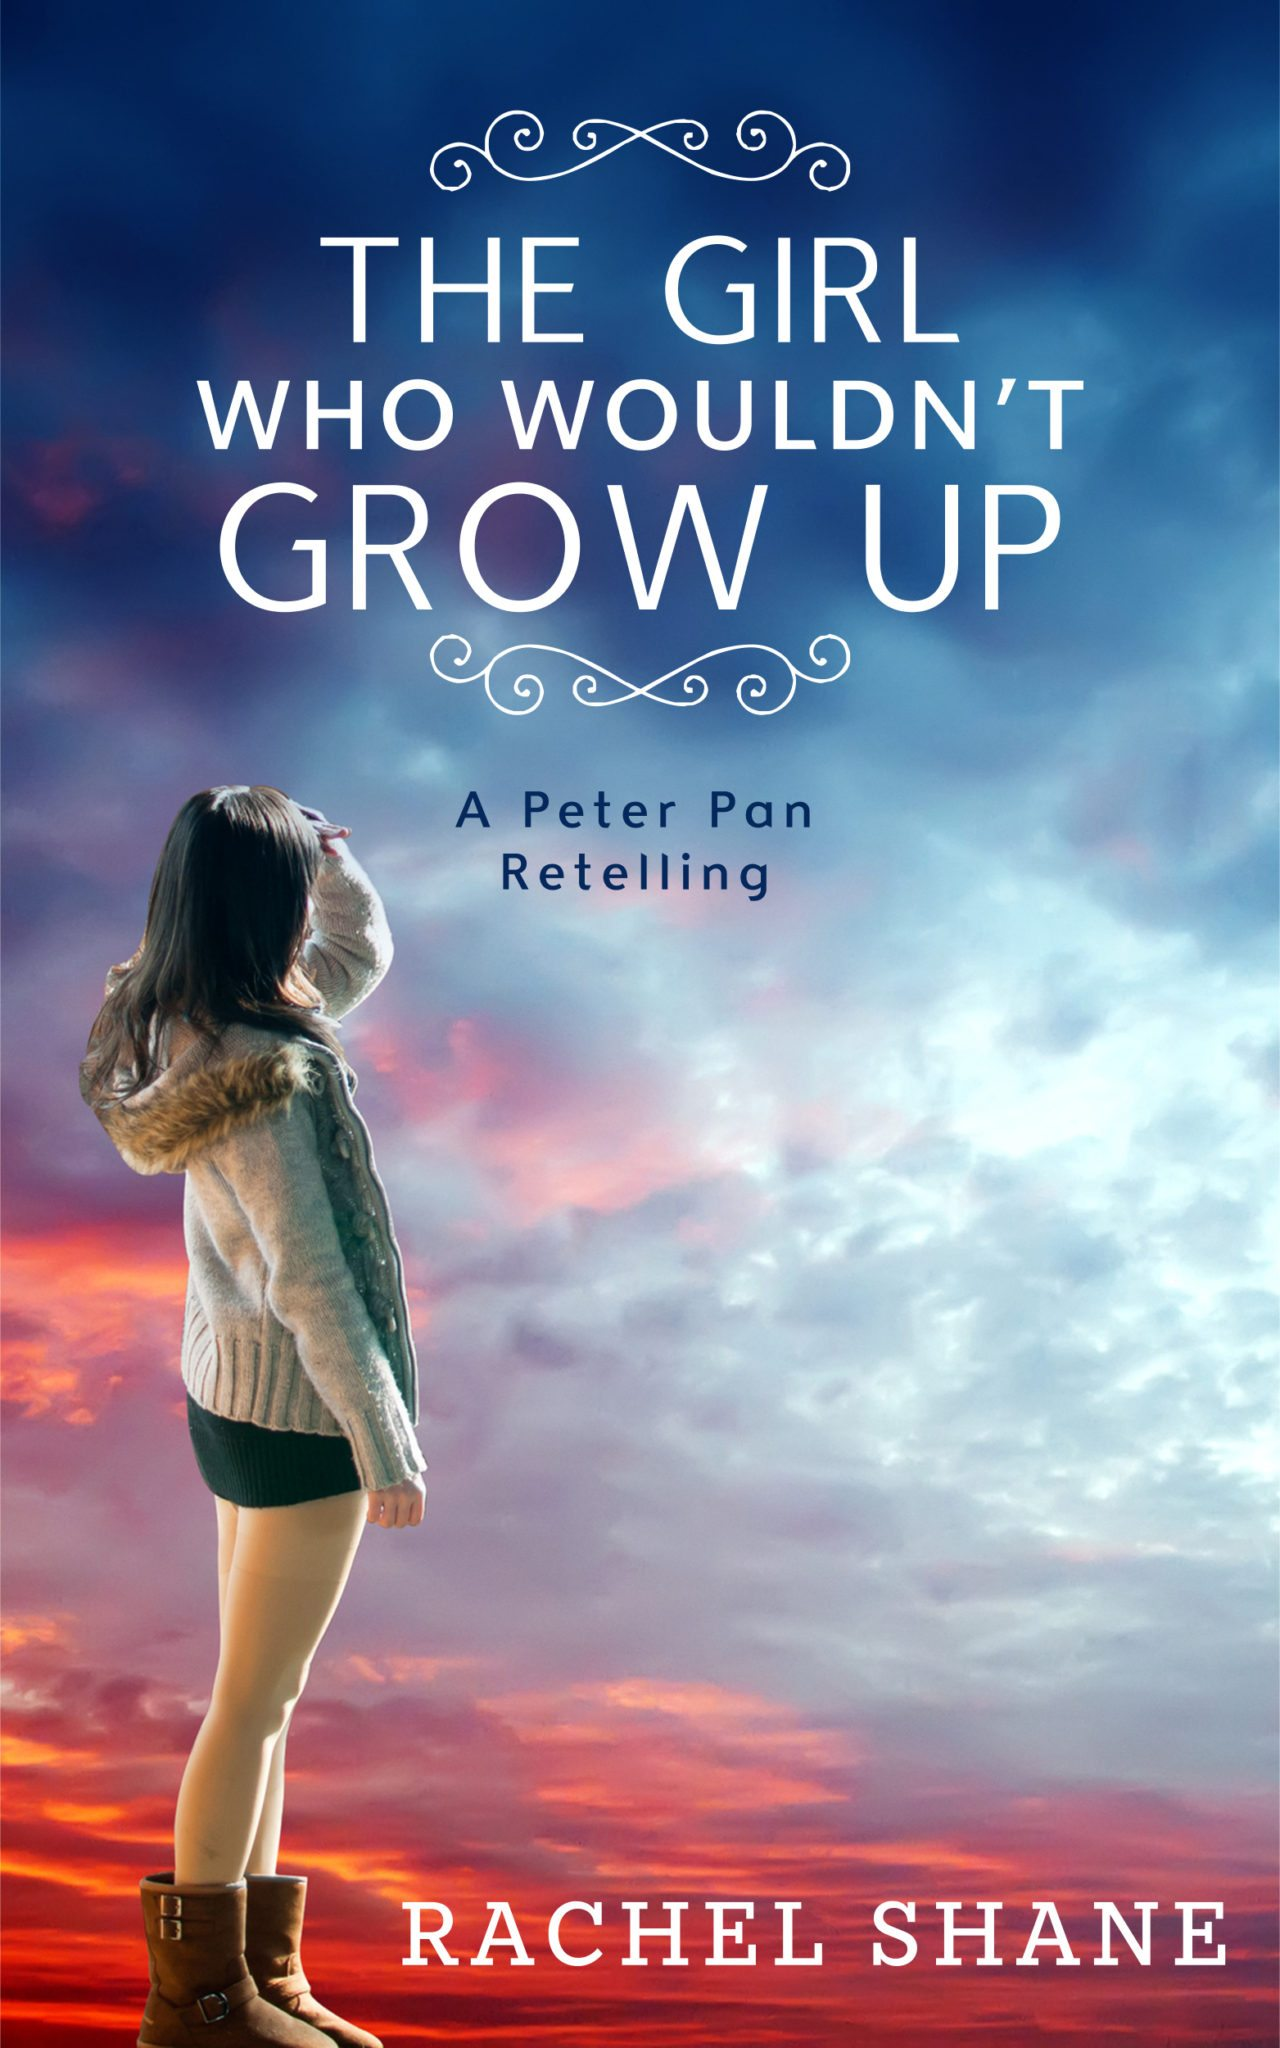 The Girl Who Wouldn't Grow Up